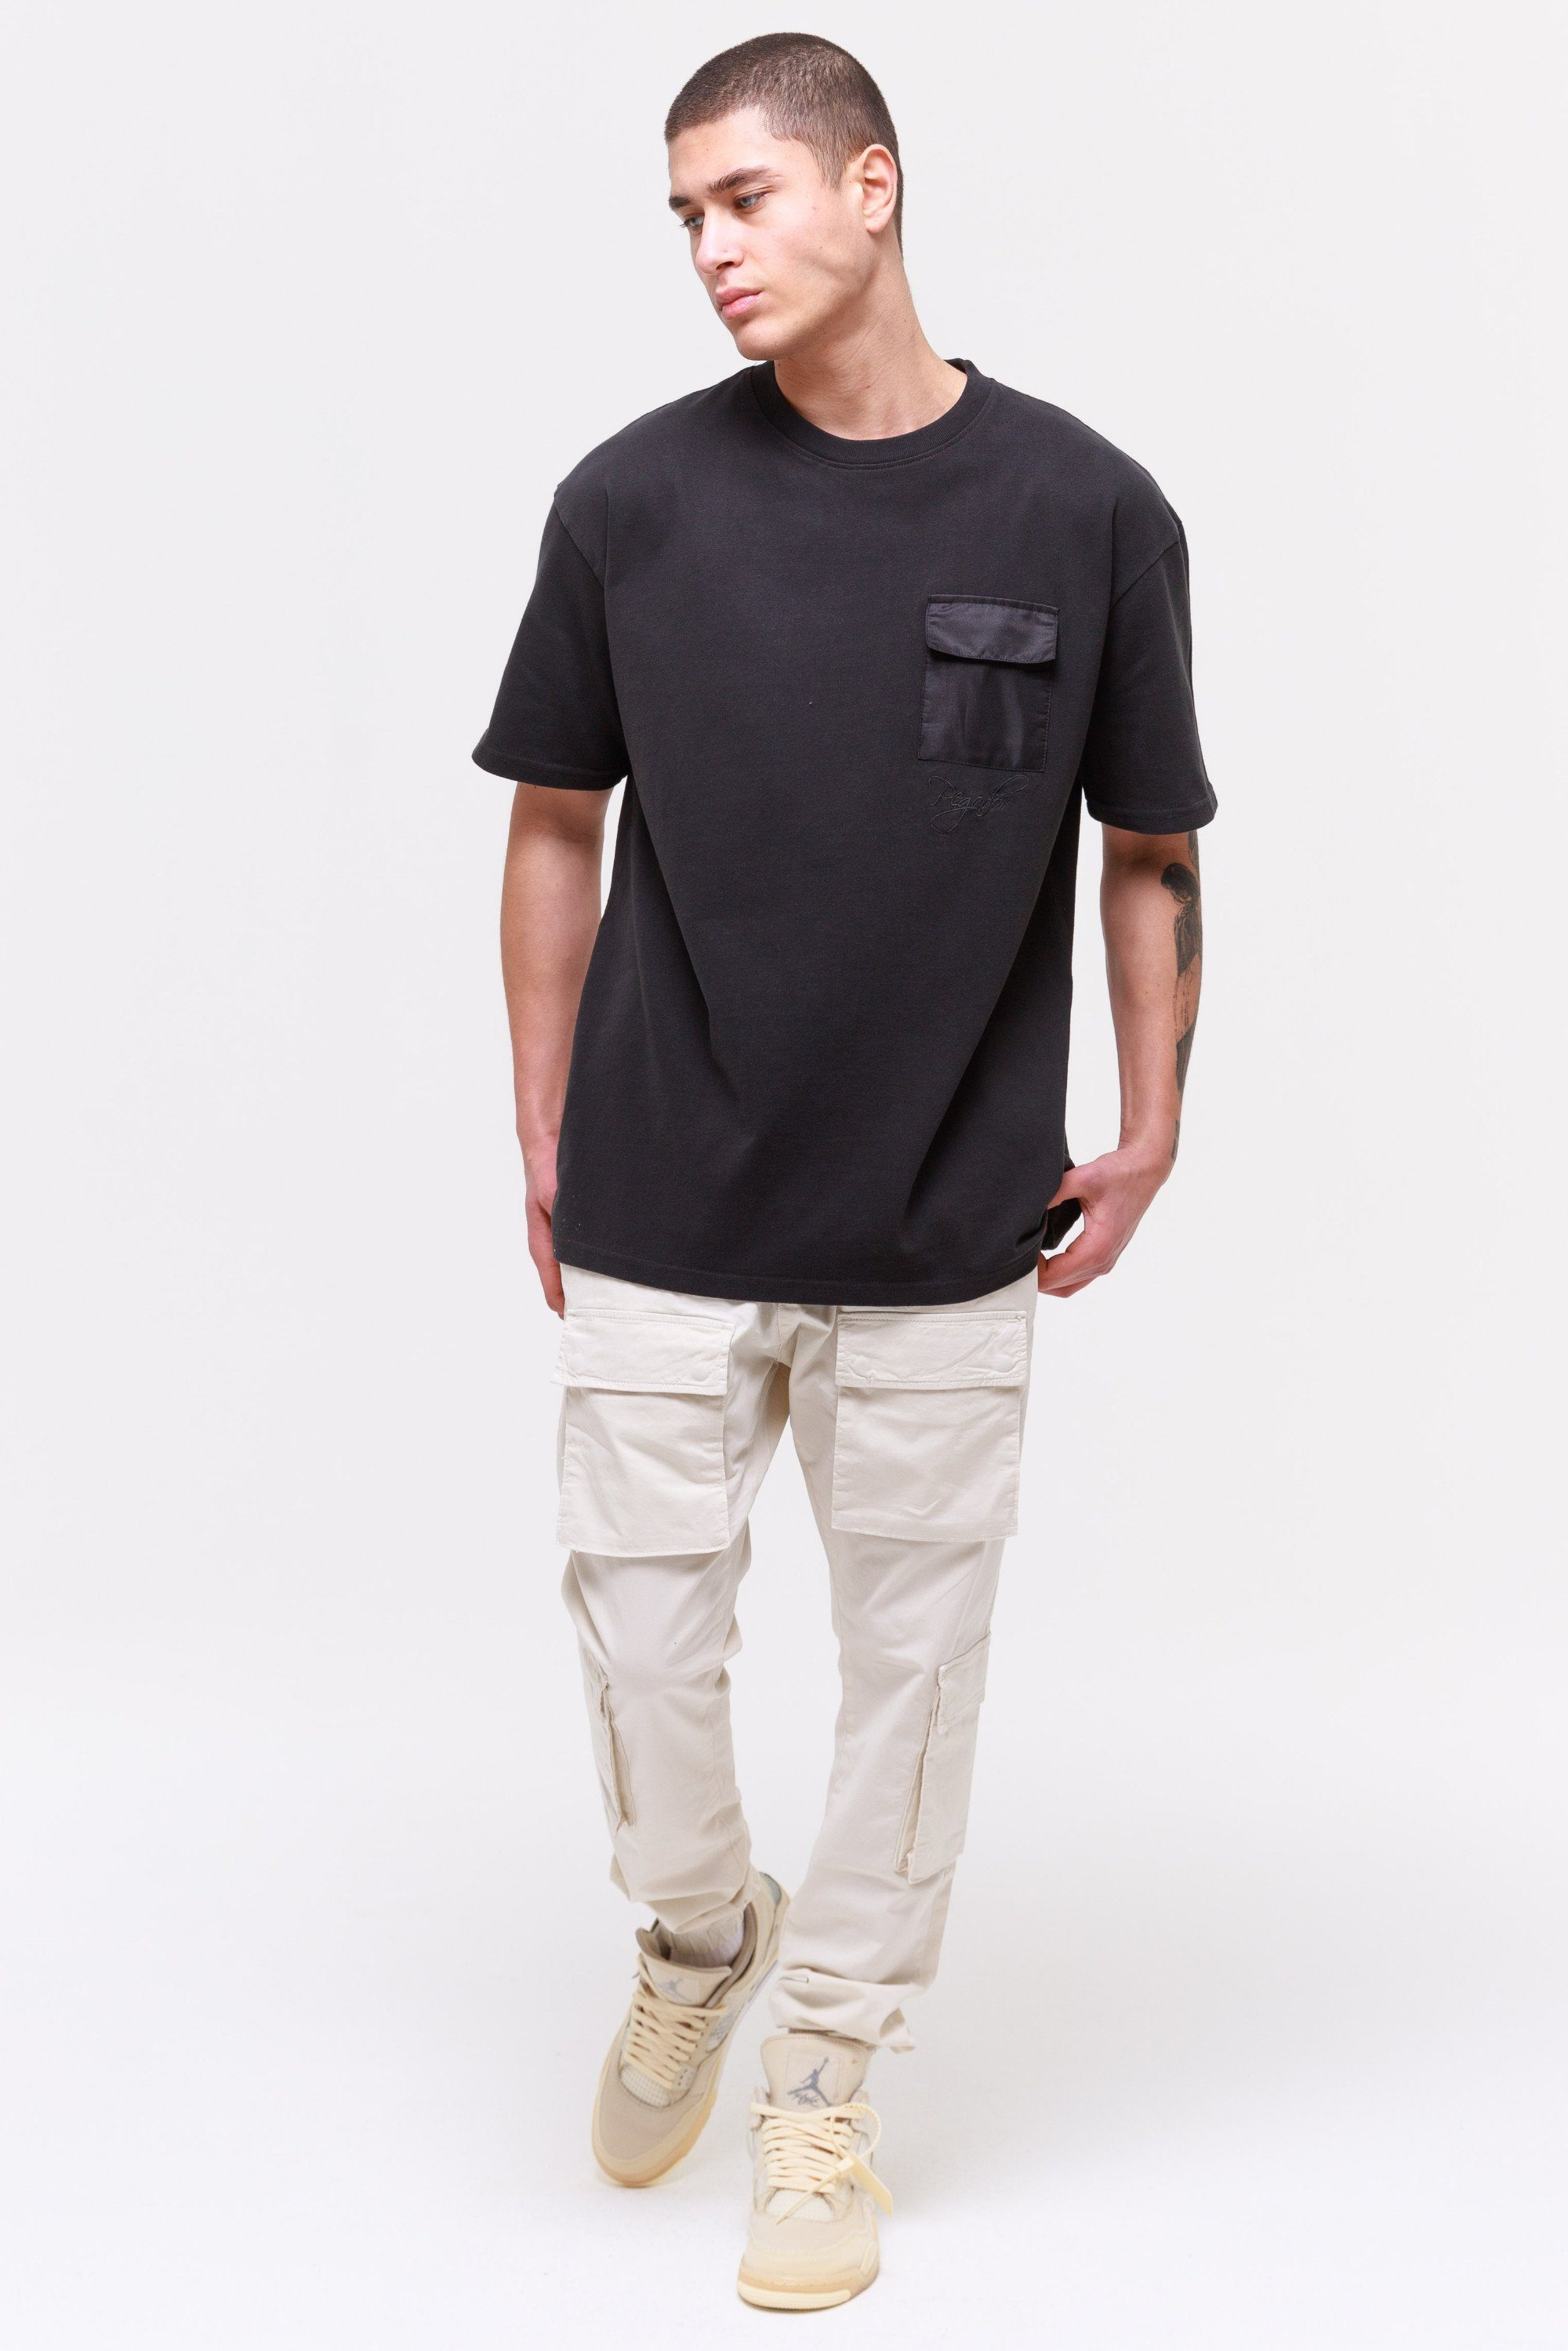 Ghosttown Utility Tee Washed Black T-SHIRT Wild Society